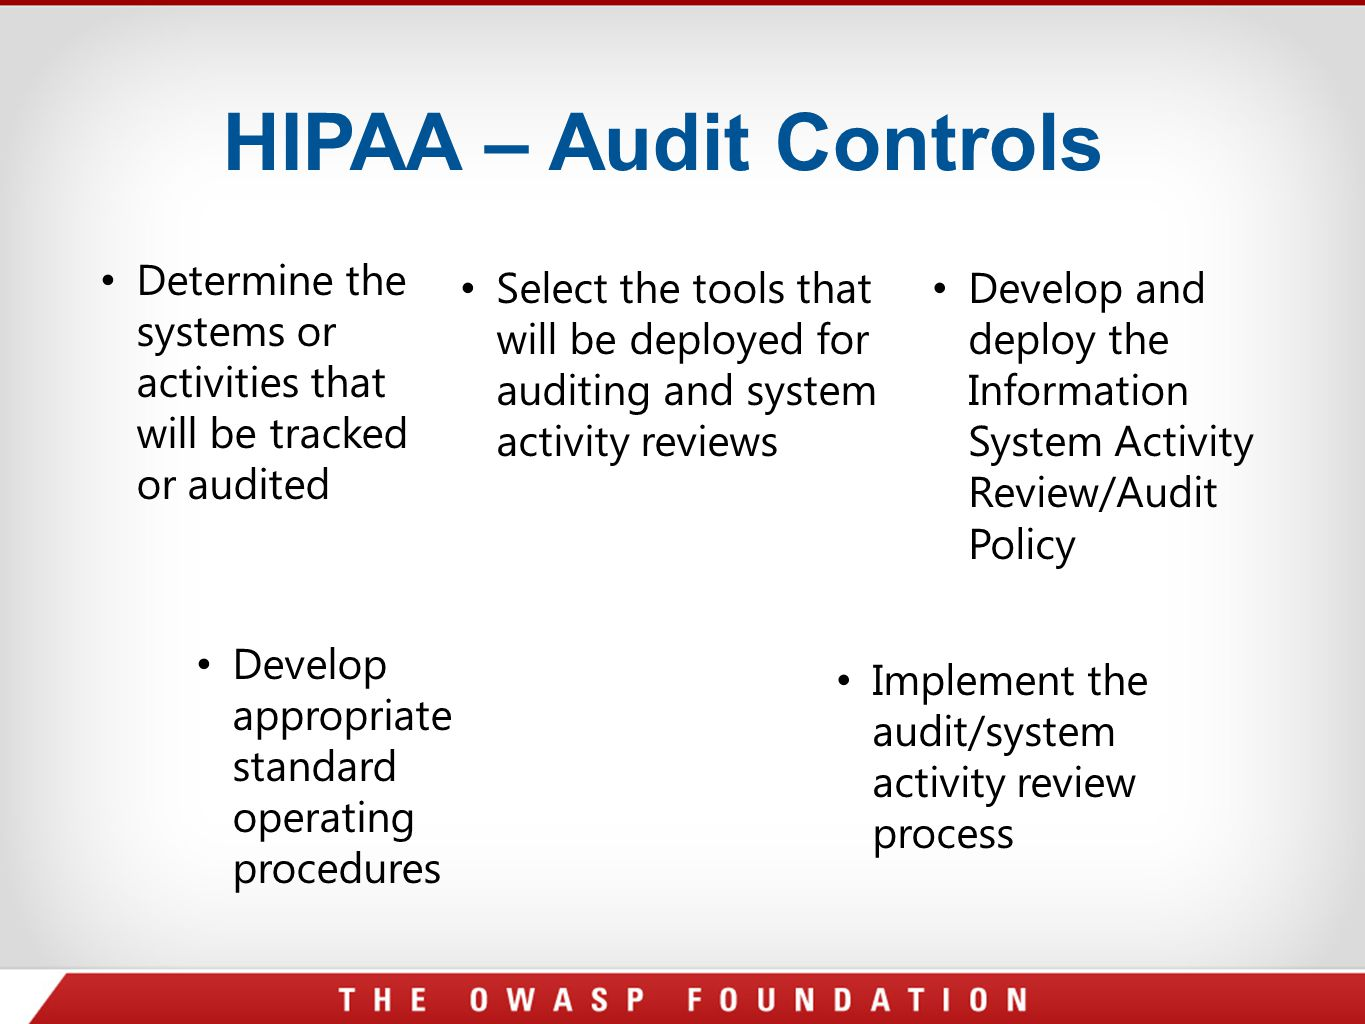 HIPAA – Audit Controls Determine the systems or activities that will be tracked or audited.